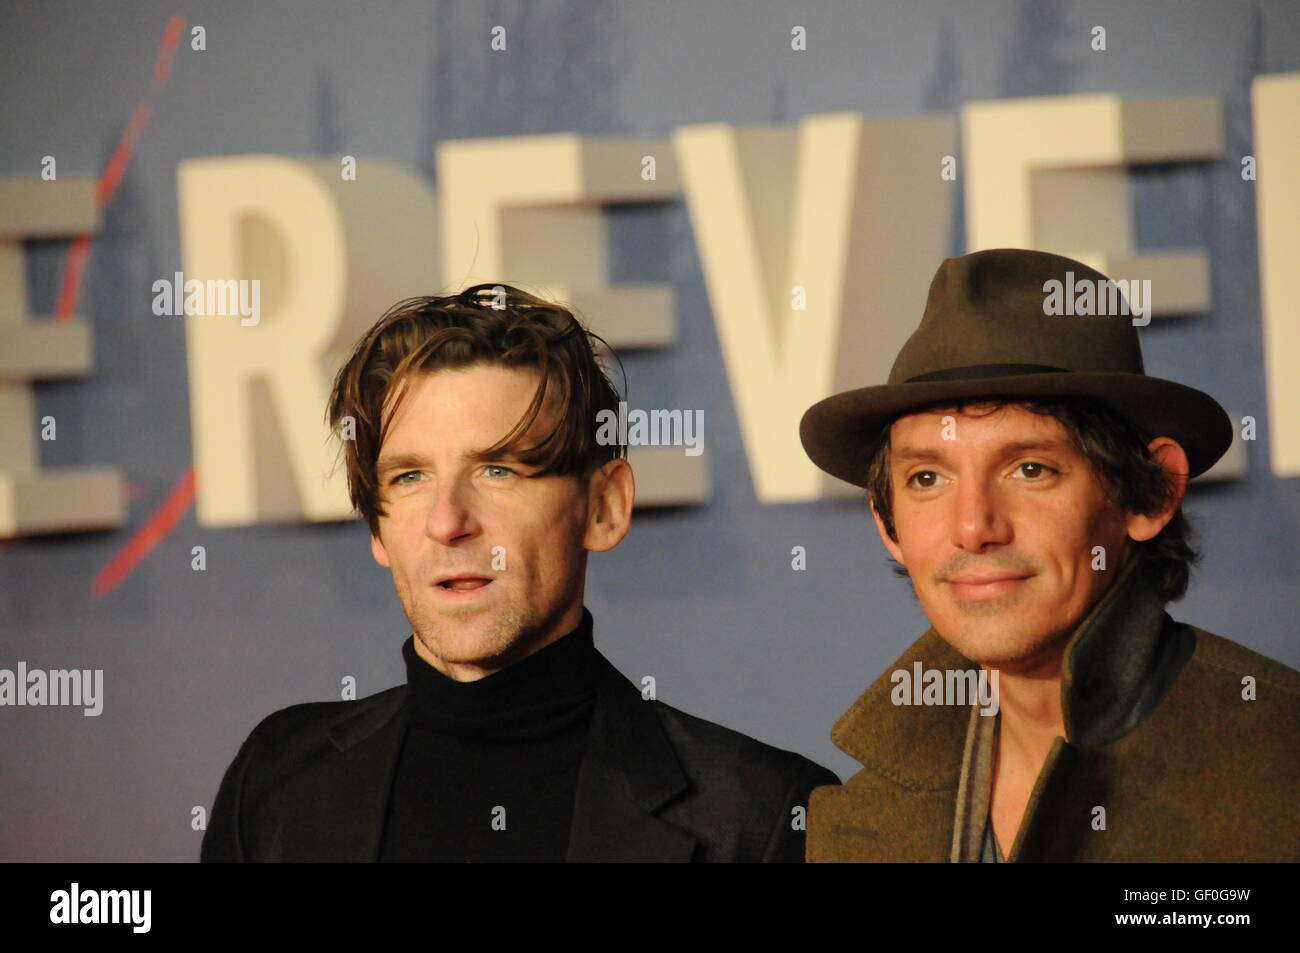 The actors, Paul Anderson and Lukas Hass, attending the London film premiere of The Revenant. - Stock Image